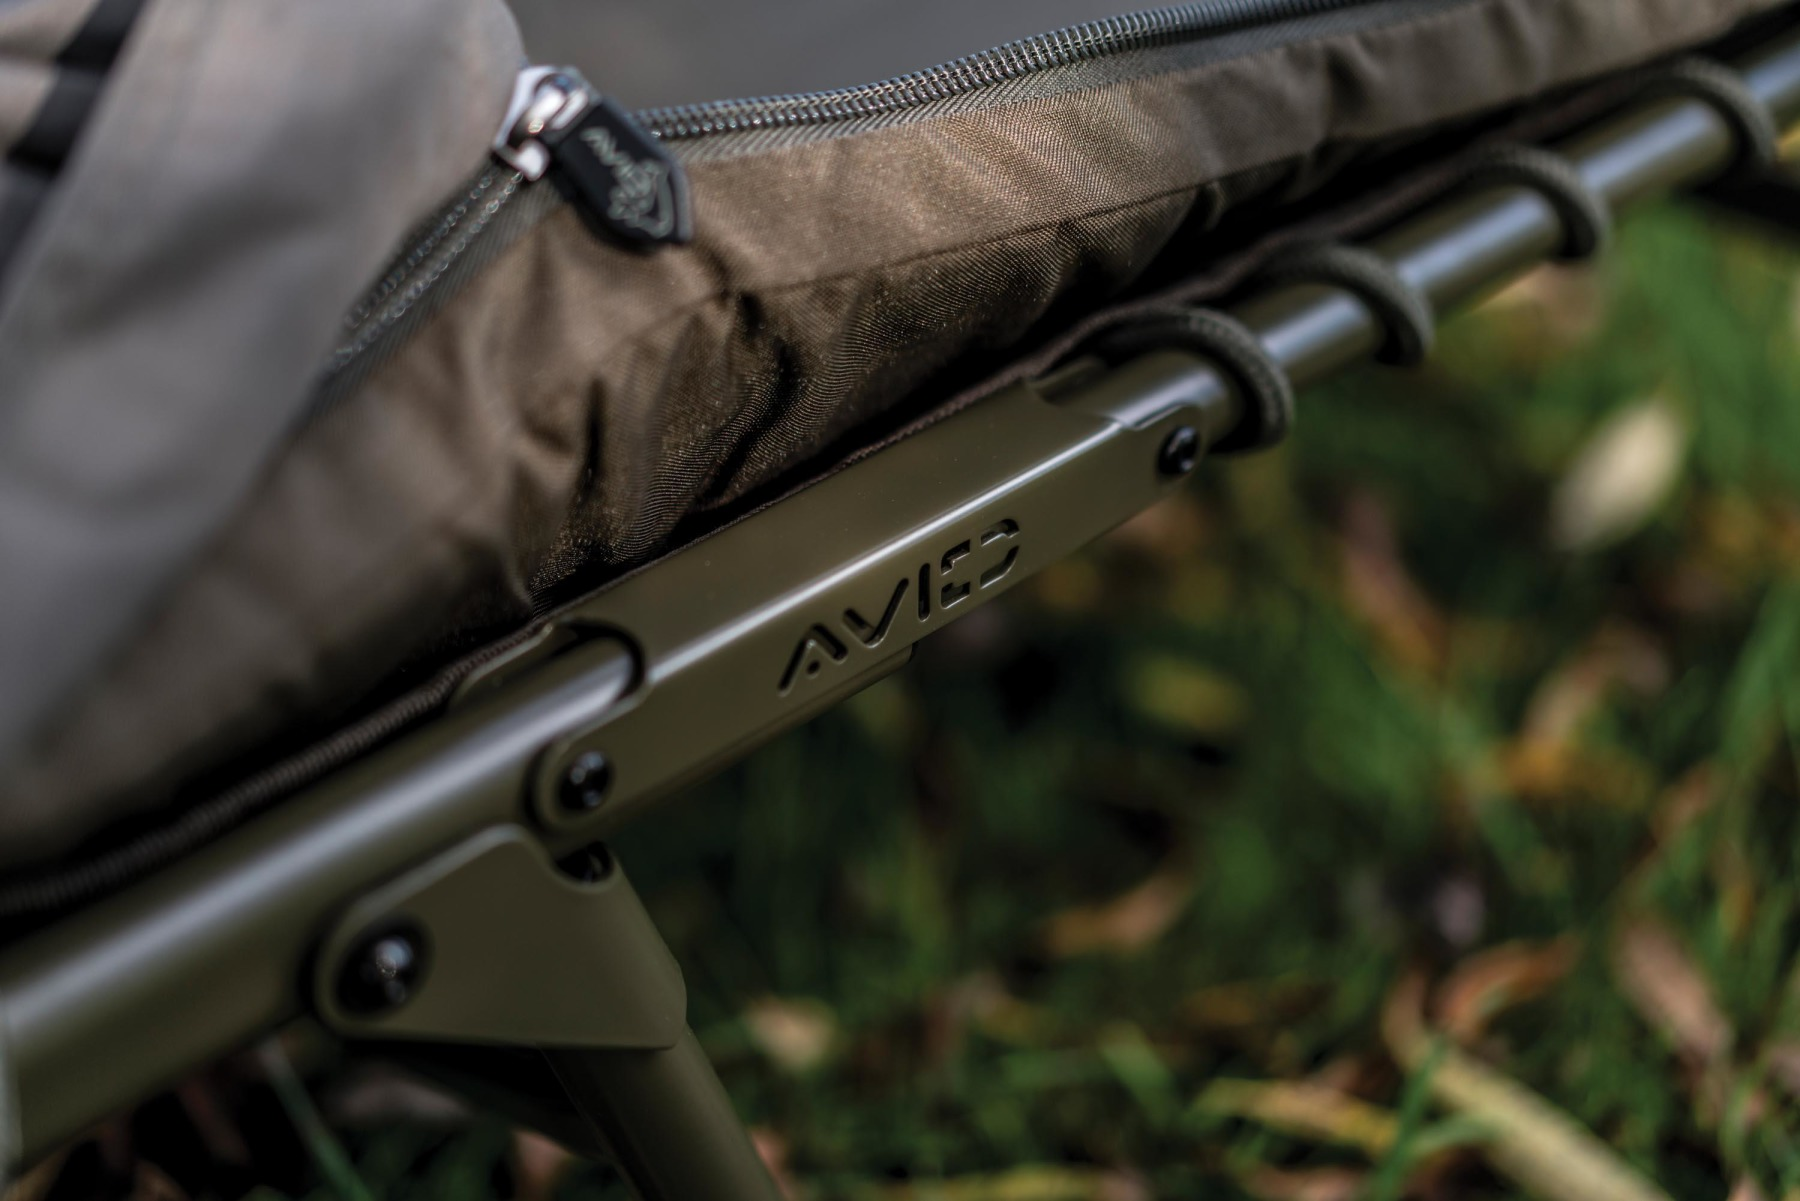 Avid have made the frames out of magnesium alloy for an even greater reduction in pounds and ounces